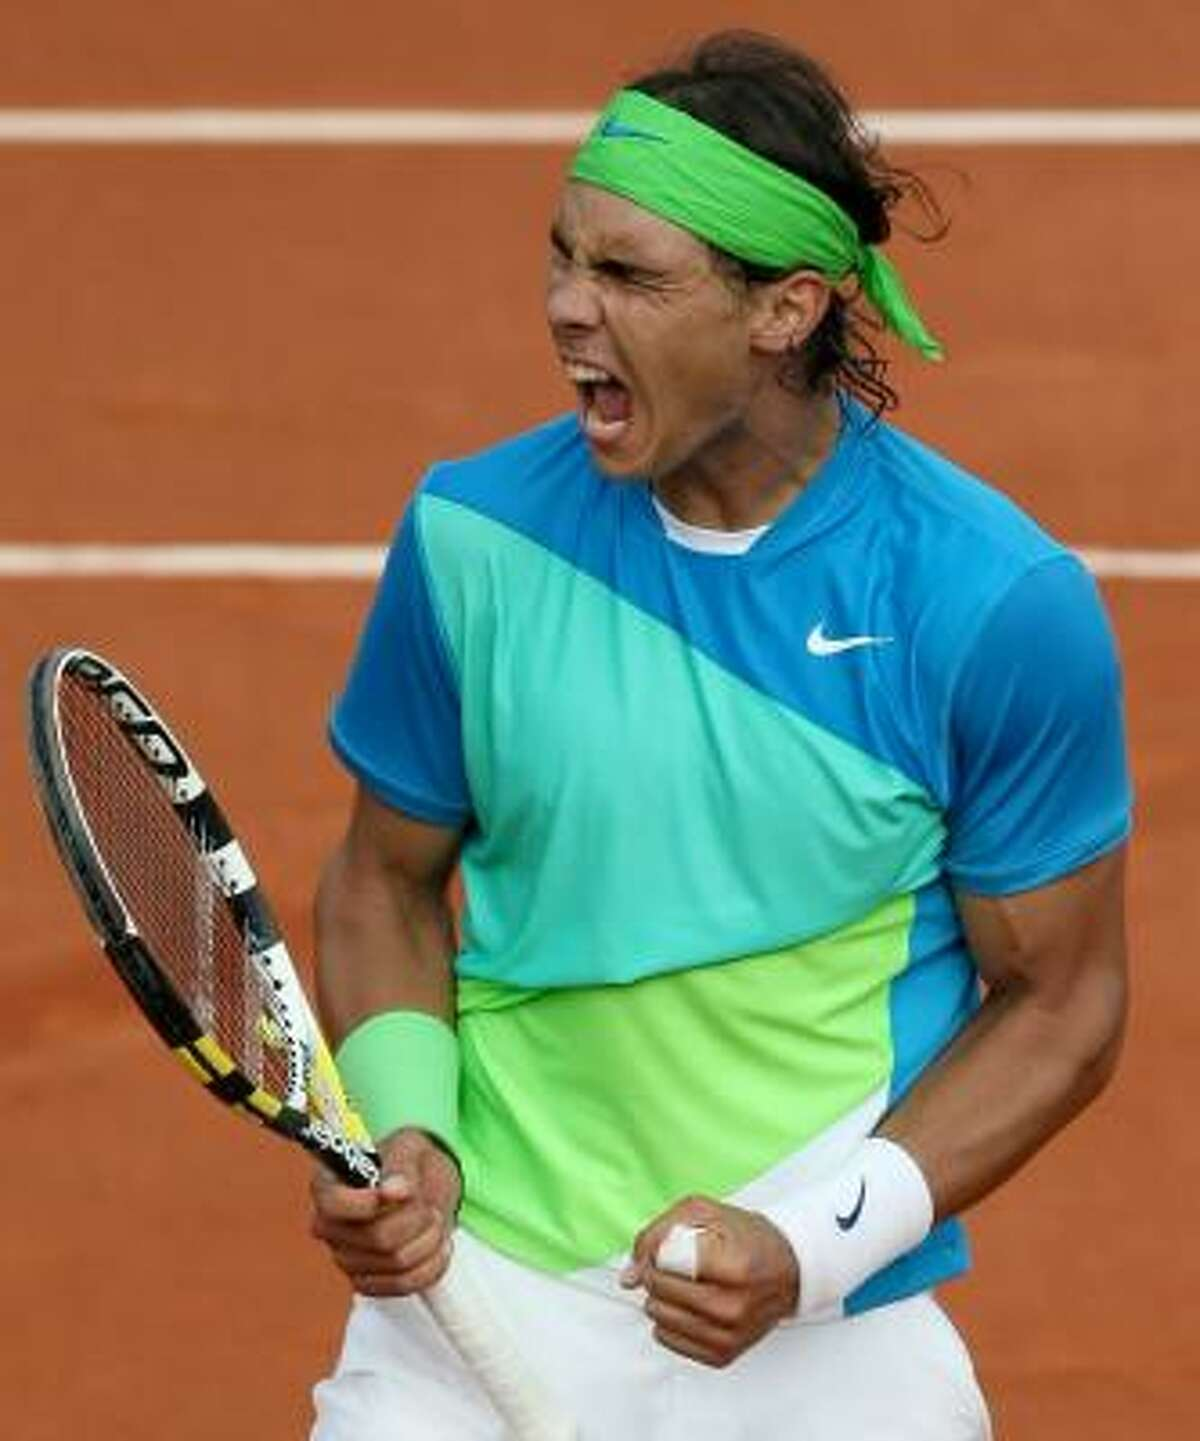 Rafael Nadal has yet to drop a set in the tournament. Last year, his 31-match winning streak at Roland Garros ended with a fourth-round loss to Robin Soderling.